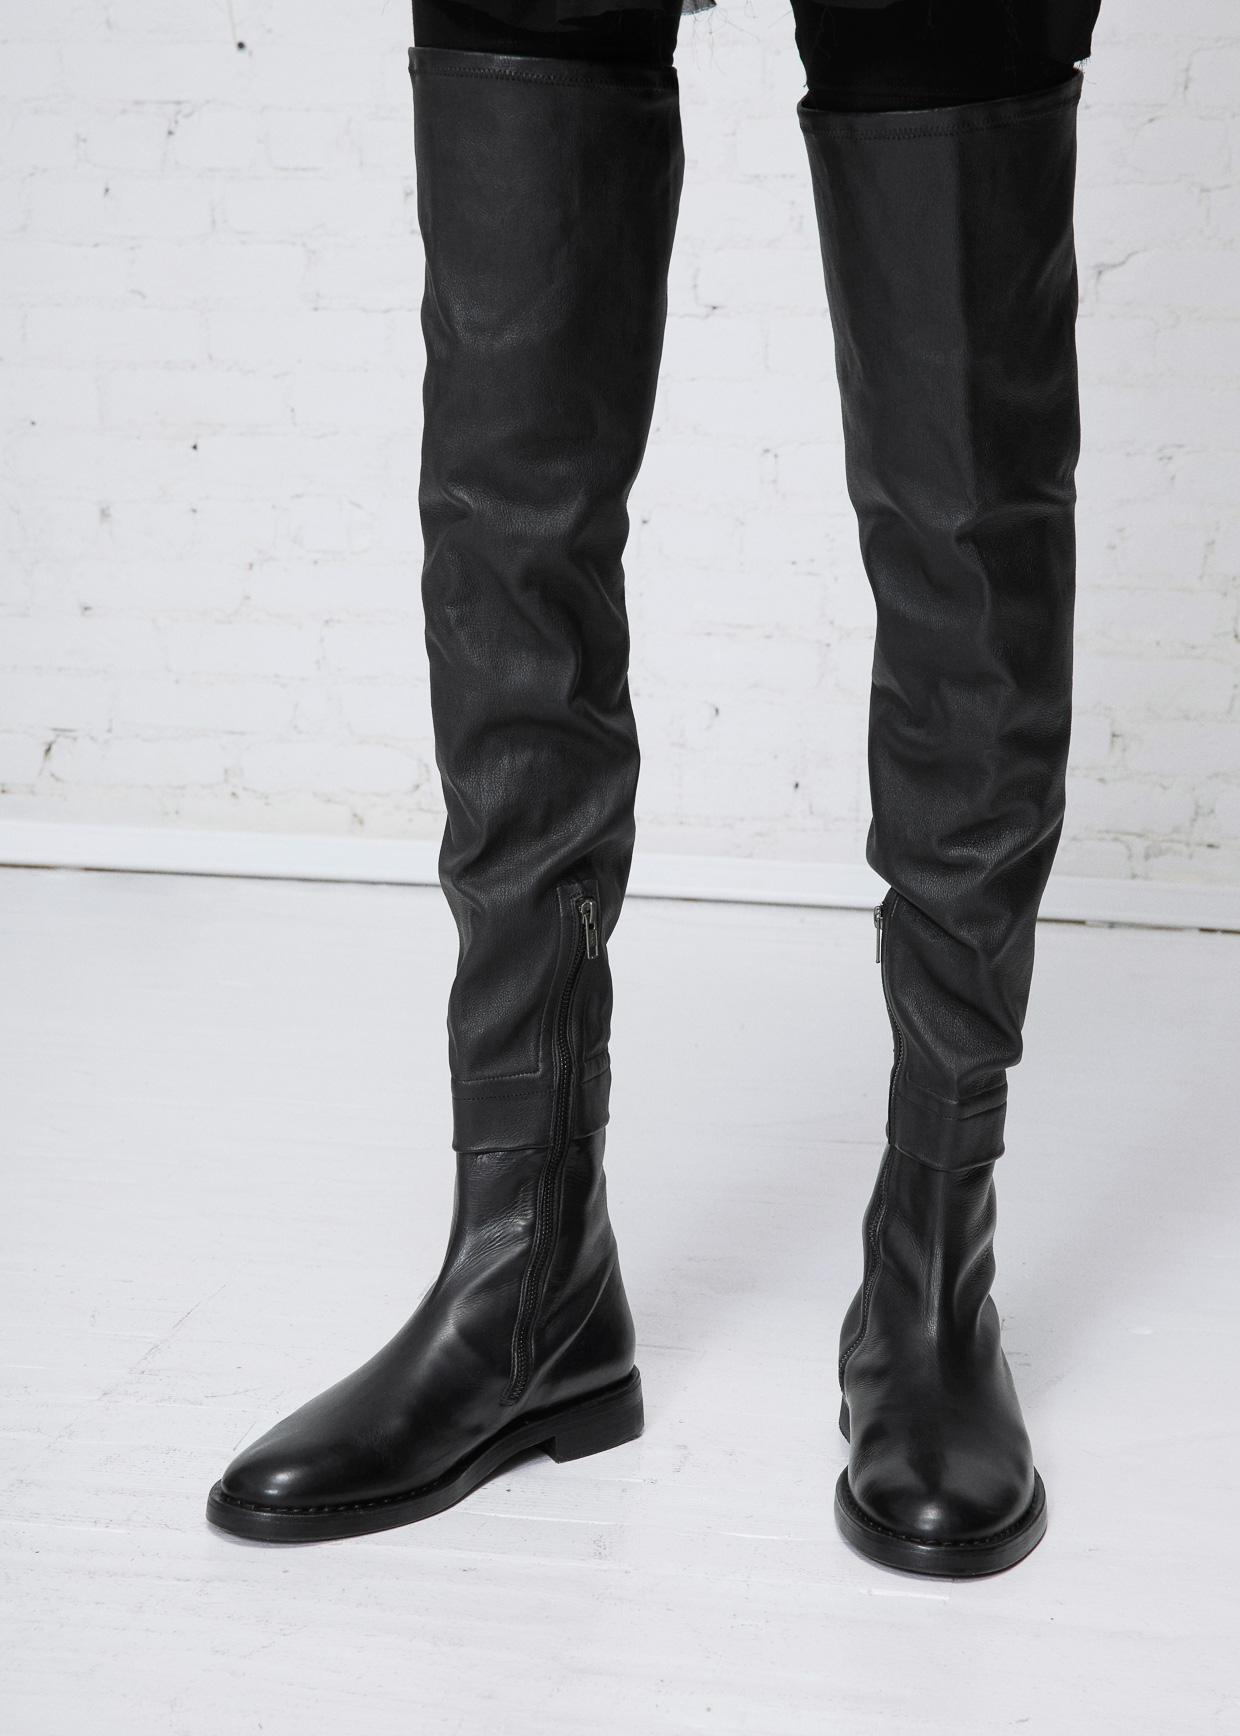 38a4388fe69 Ann Demeulemeester Over The Knee Flat Boot in Black - Lyst